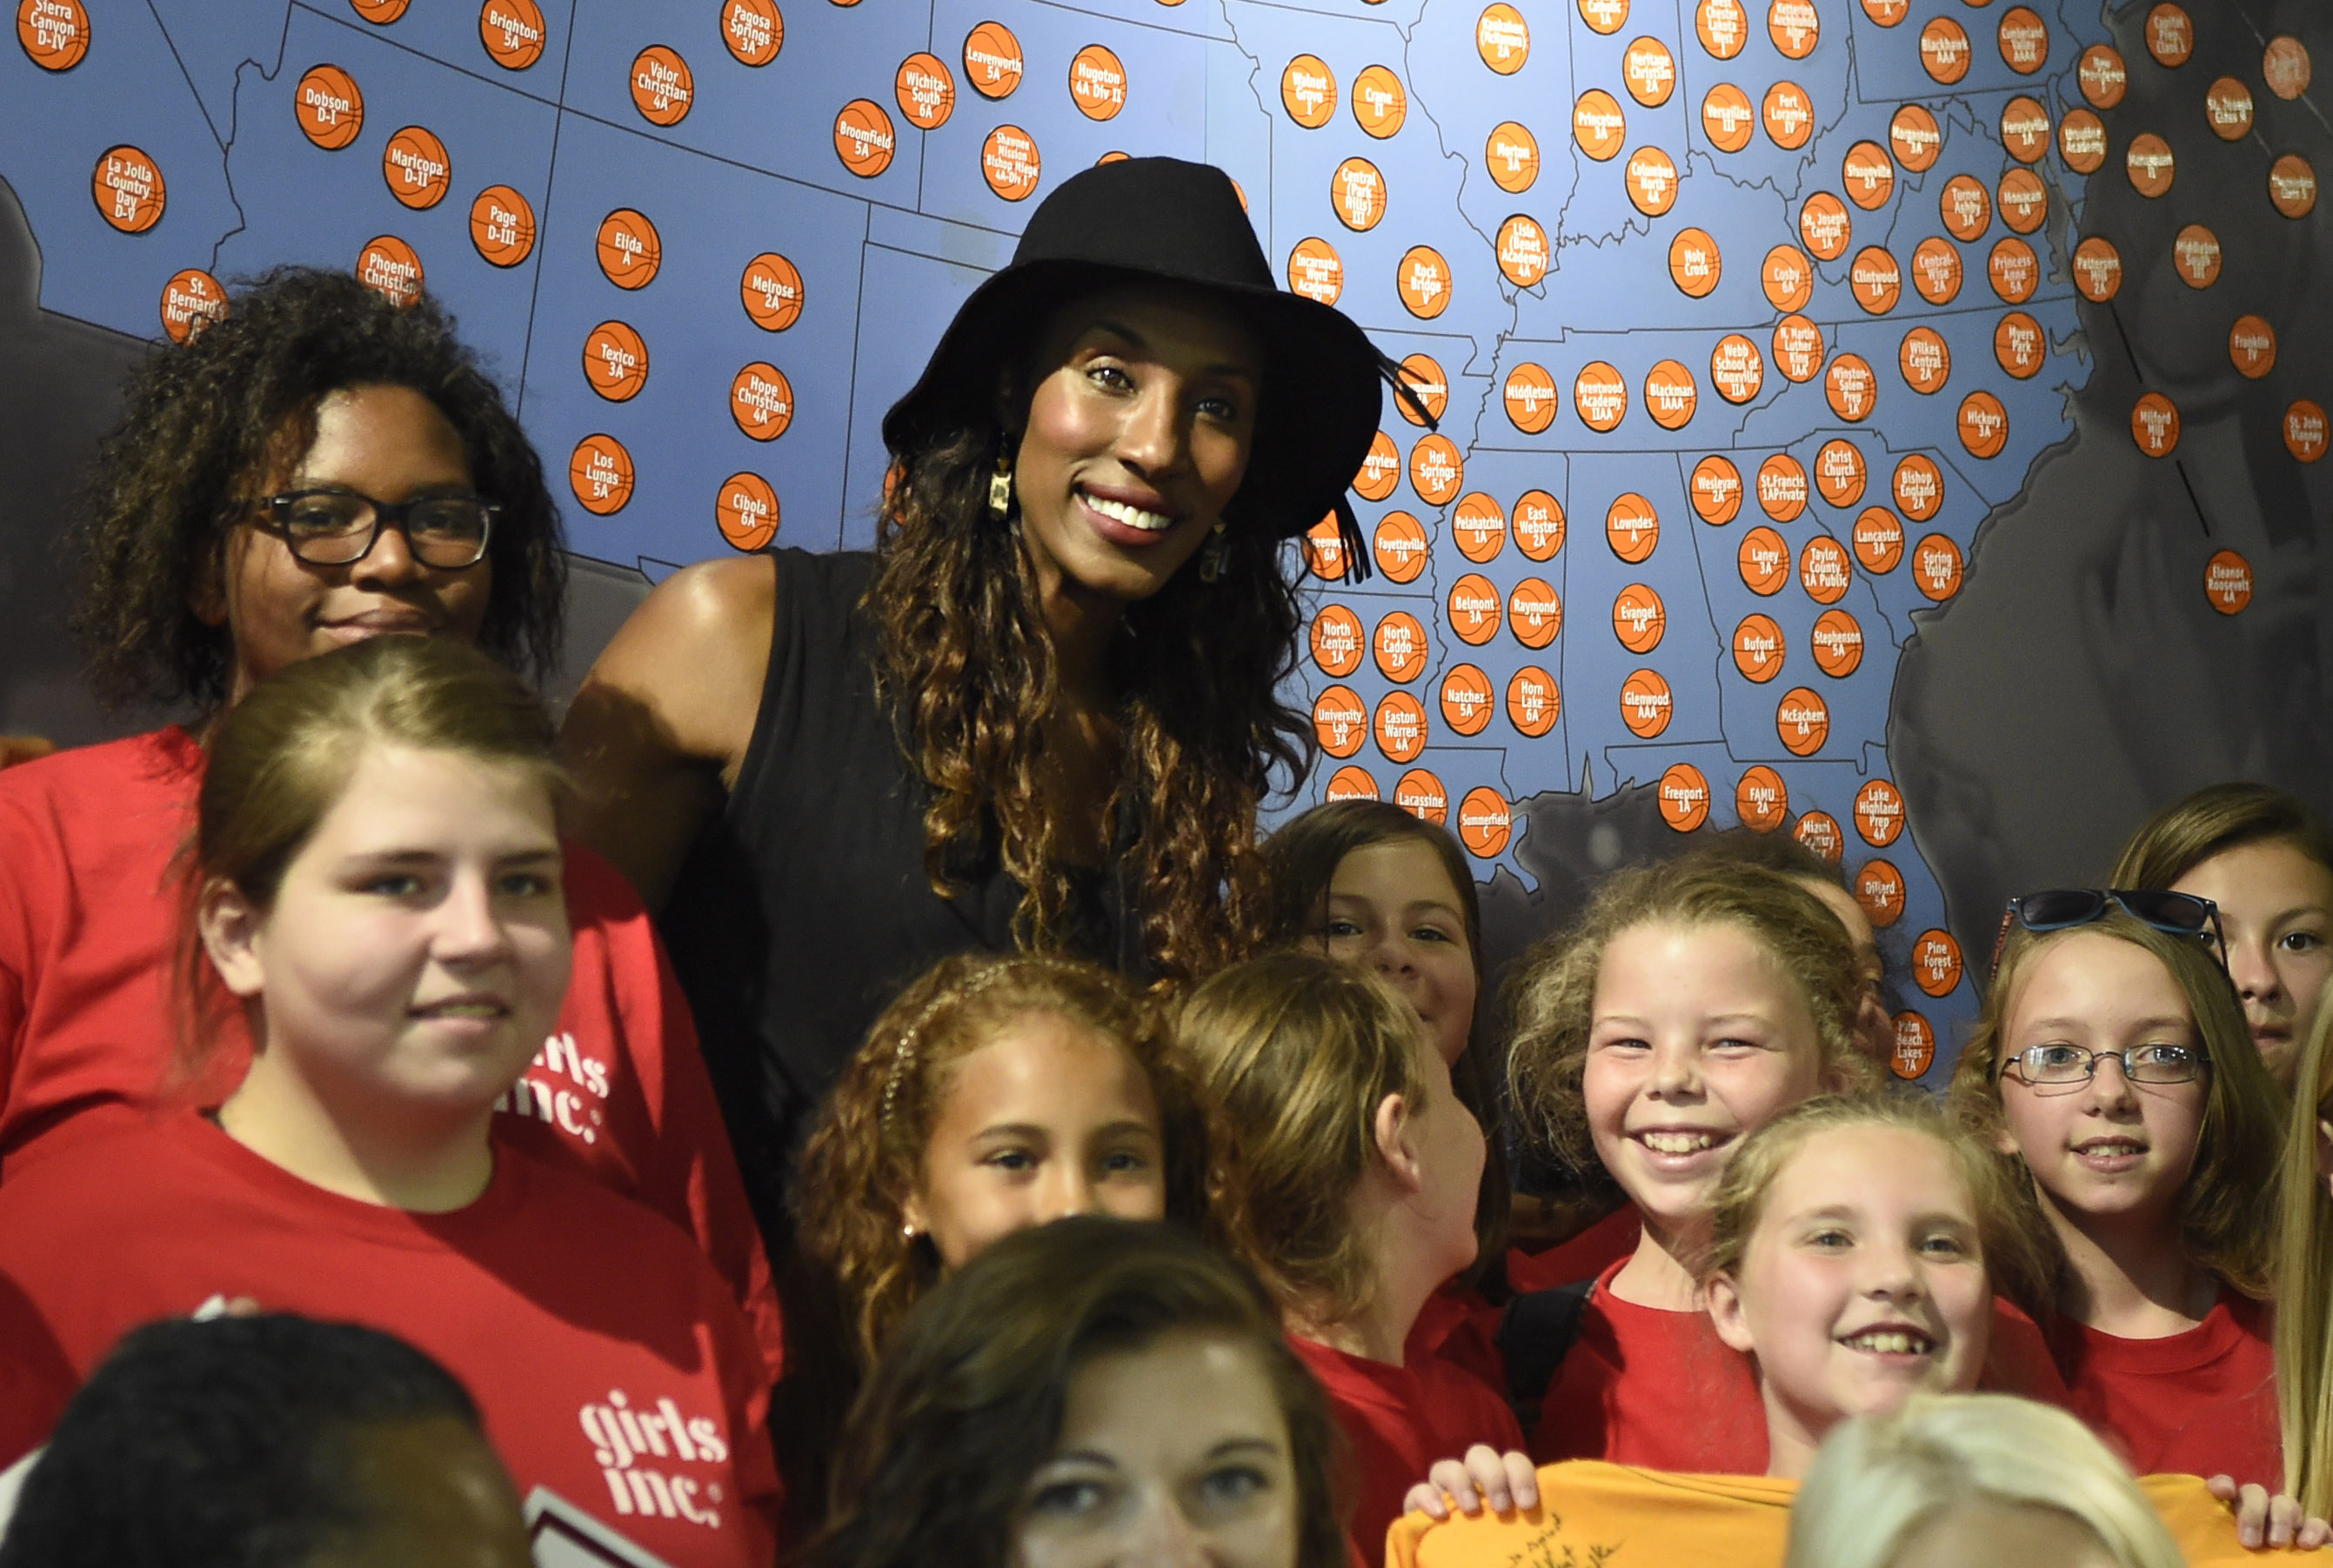 Lisa Leslie, former WNBA basketball player and 2015 Women's Basketball Hall of Fame inductee, center, poses for a photo with children during an autograph session at the Women's Basketball Hall of Fame on Saturday, June 13, 2015 in Knoxville, Tenn. (Adam L